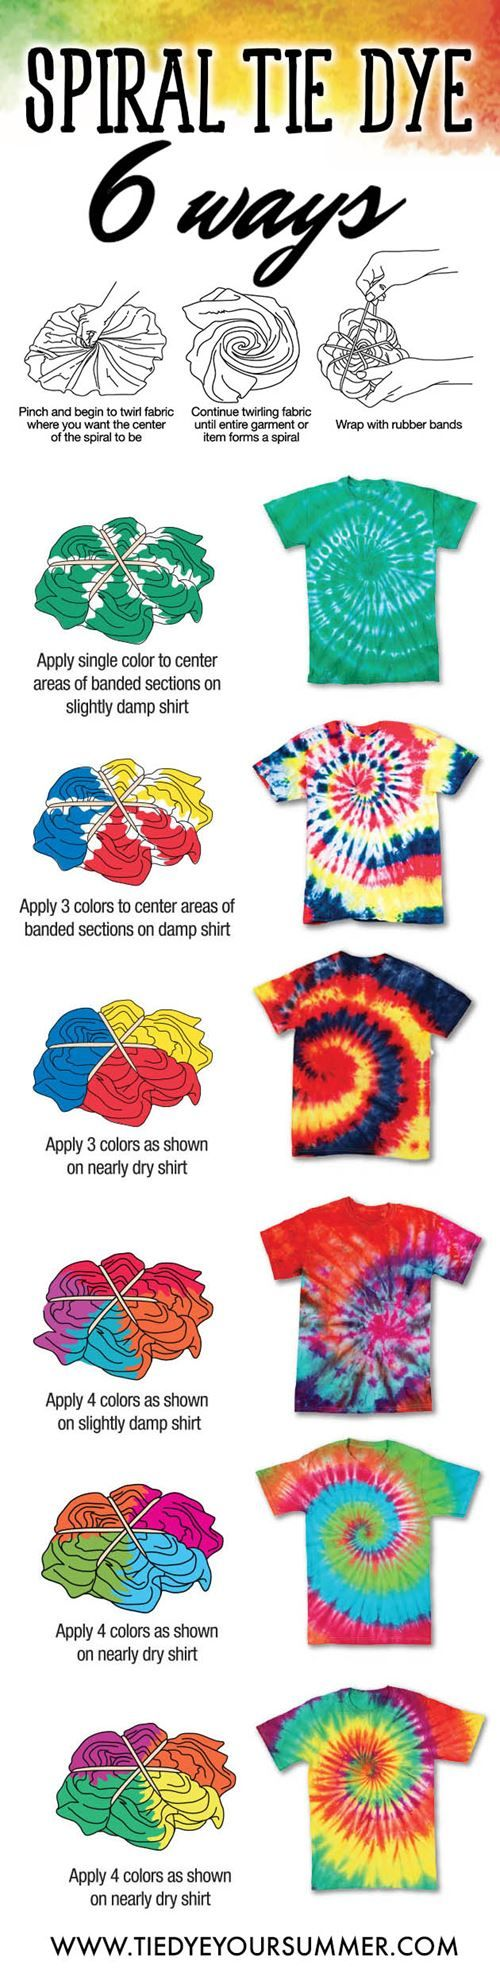 6f9b3484c2bb9a 6 ways to do SPIRAL tie dye!!! How to tie dye and get great results ... all  you need is Tulip One-Step Tie Dye!